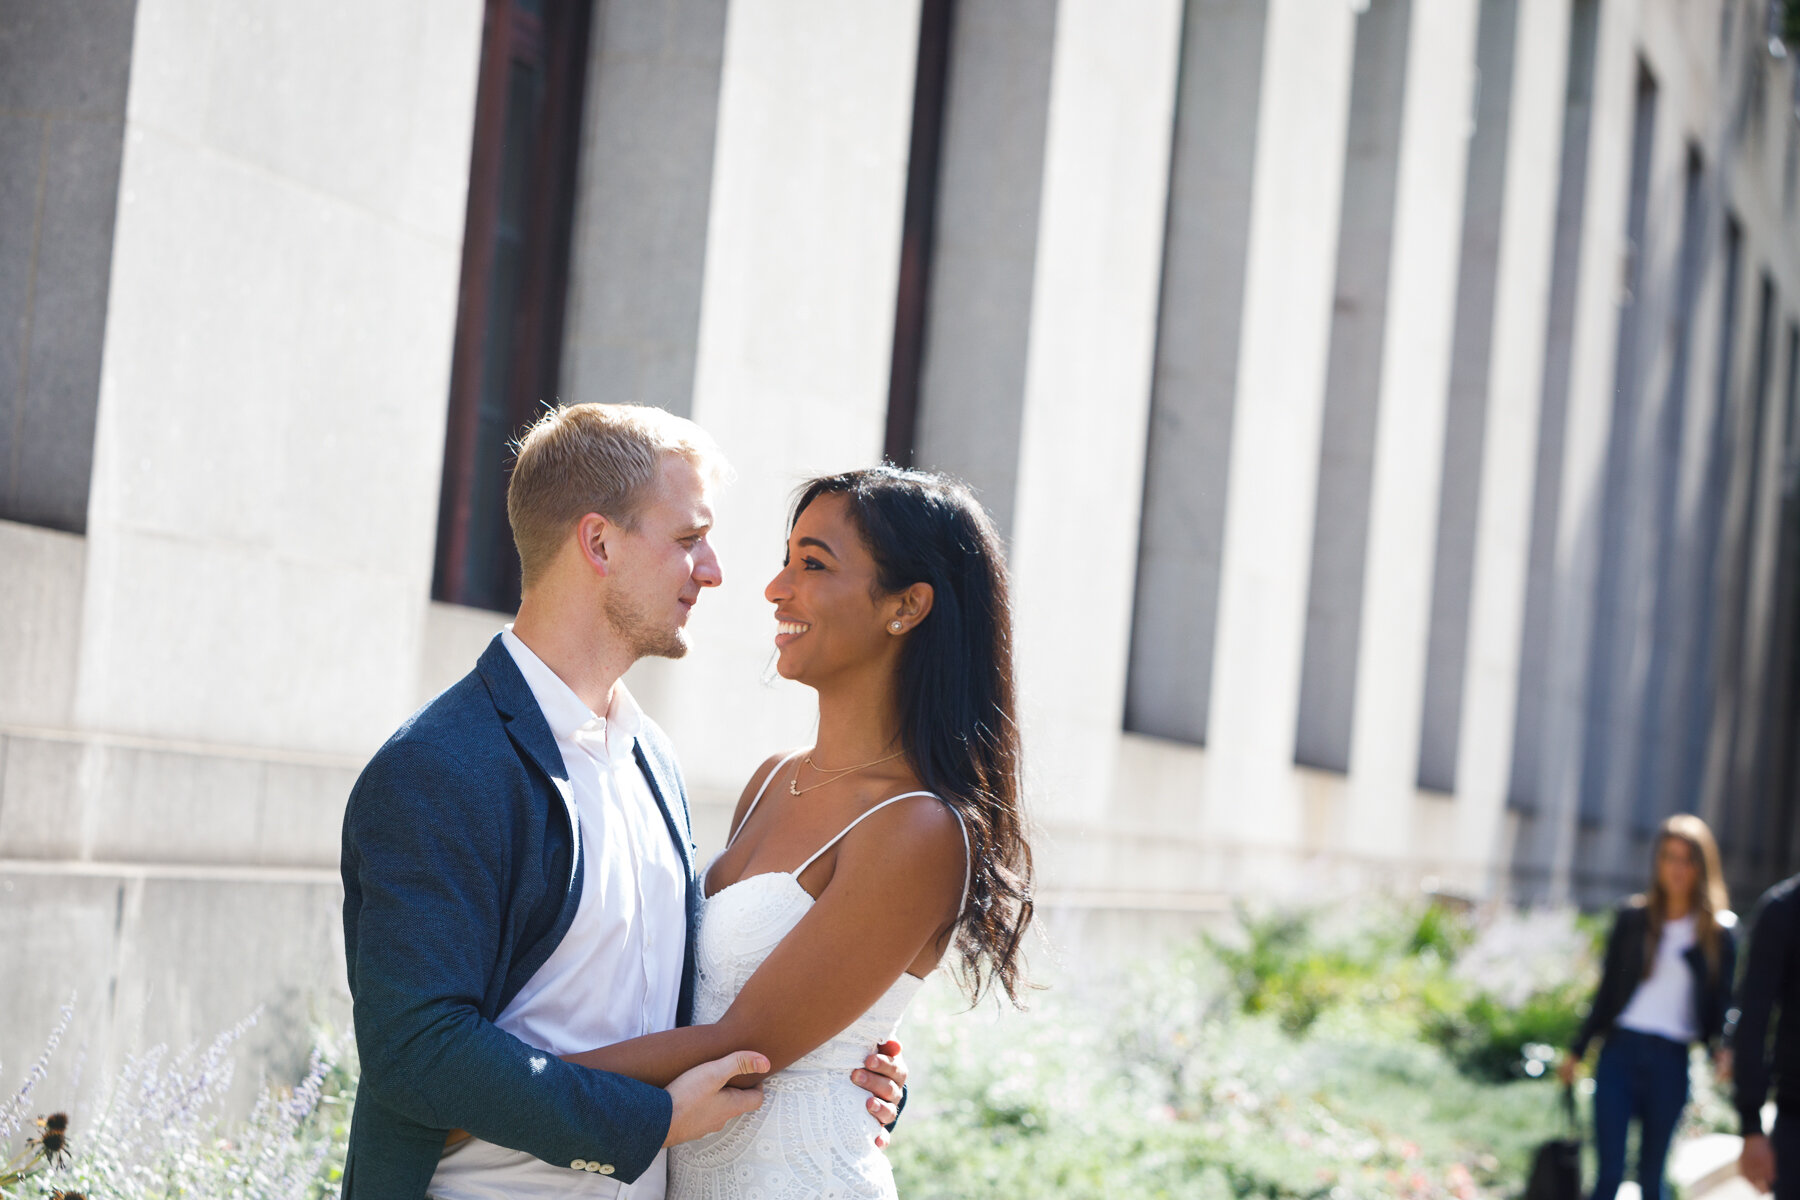 NYC Manhattan City Hall Wedding _ Jonathan Heisler _ 10042019 _0019.jpg